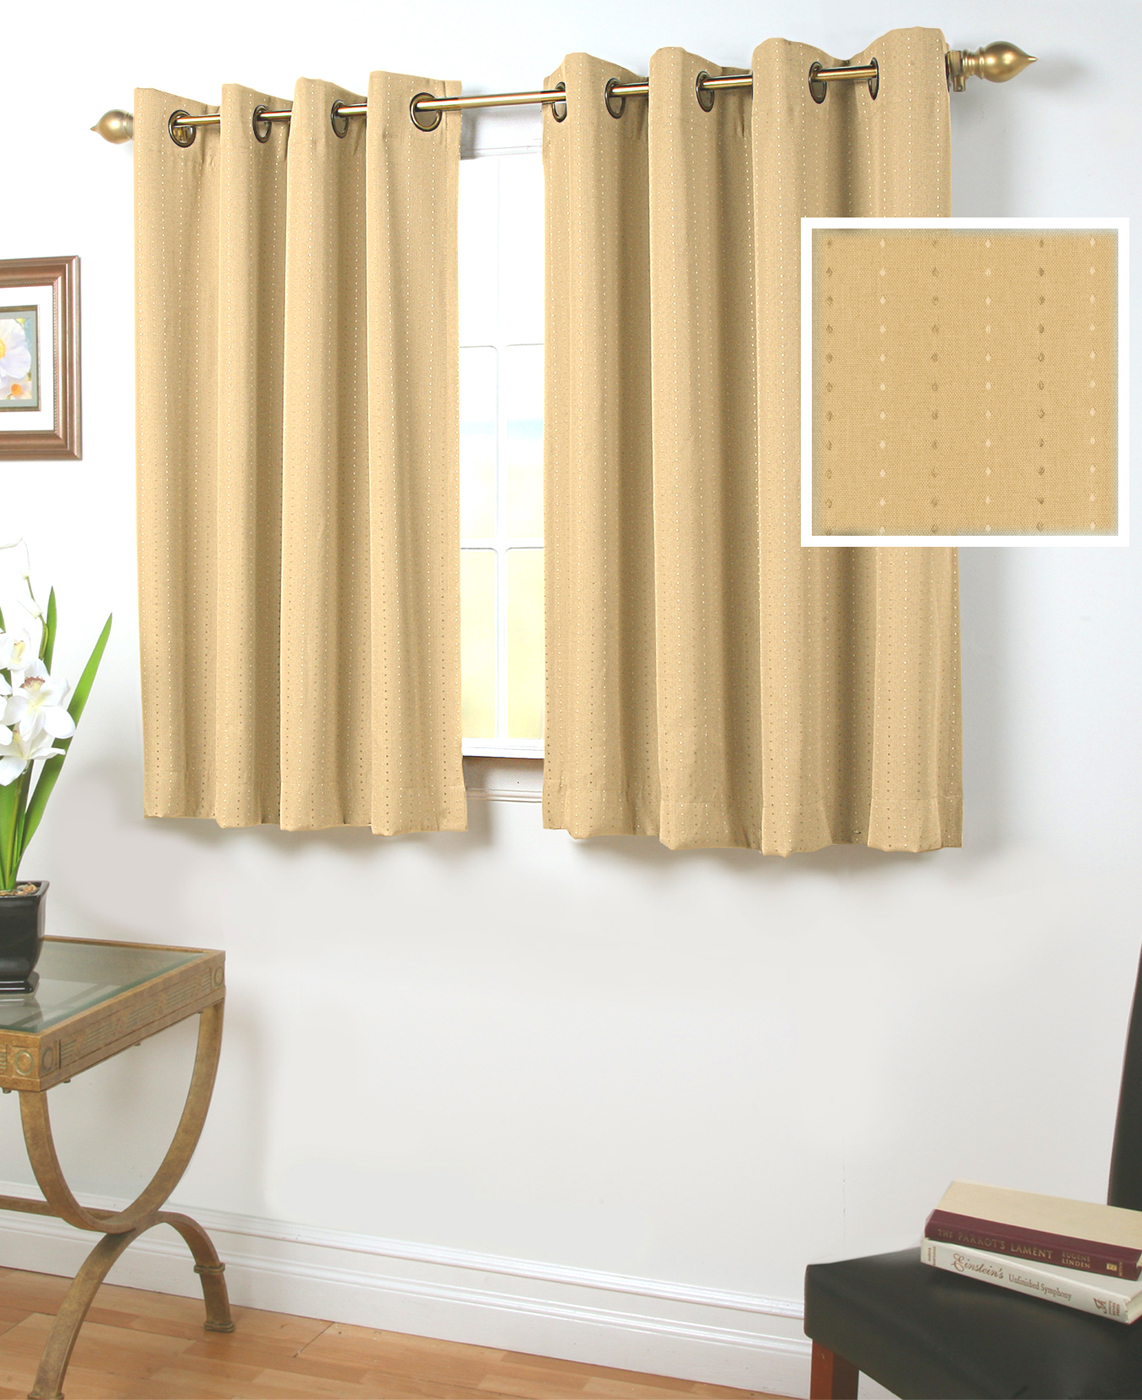 45 Inch Long Curtains TheCurtainShop